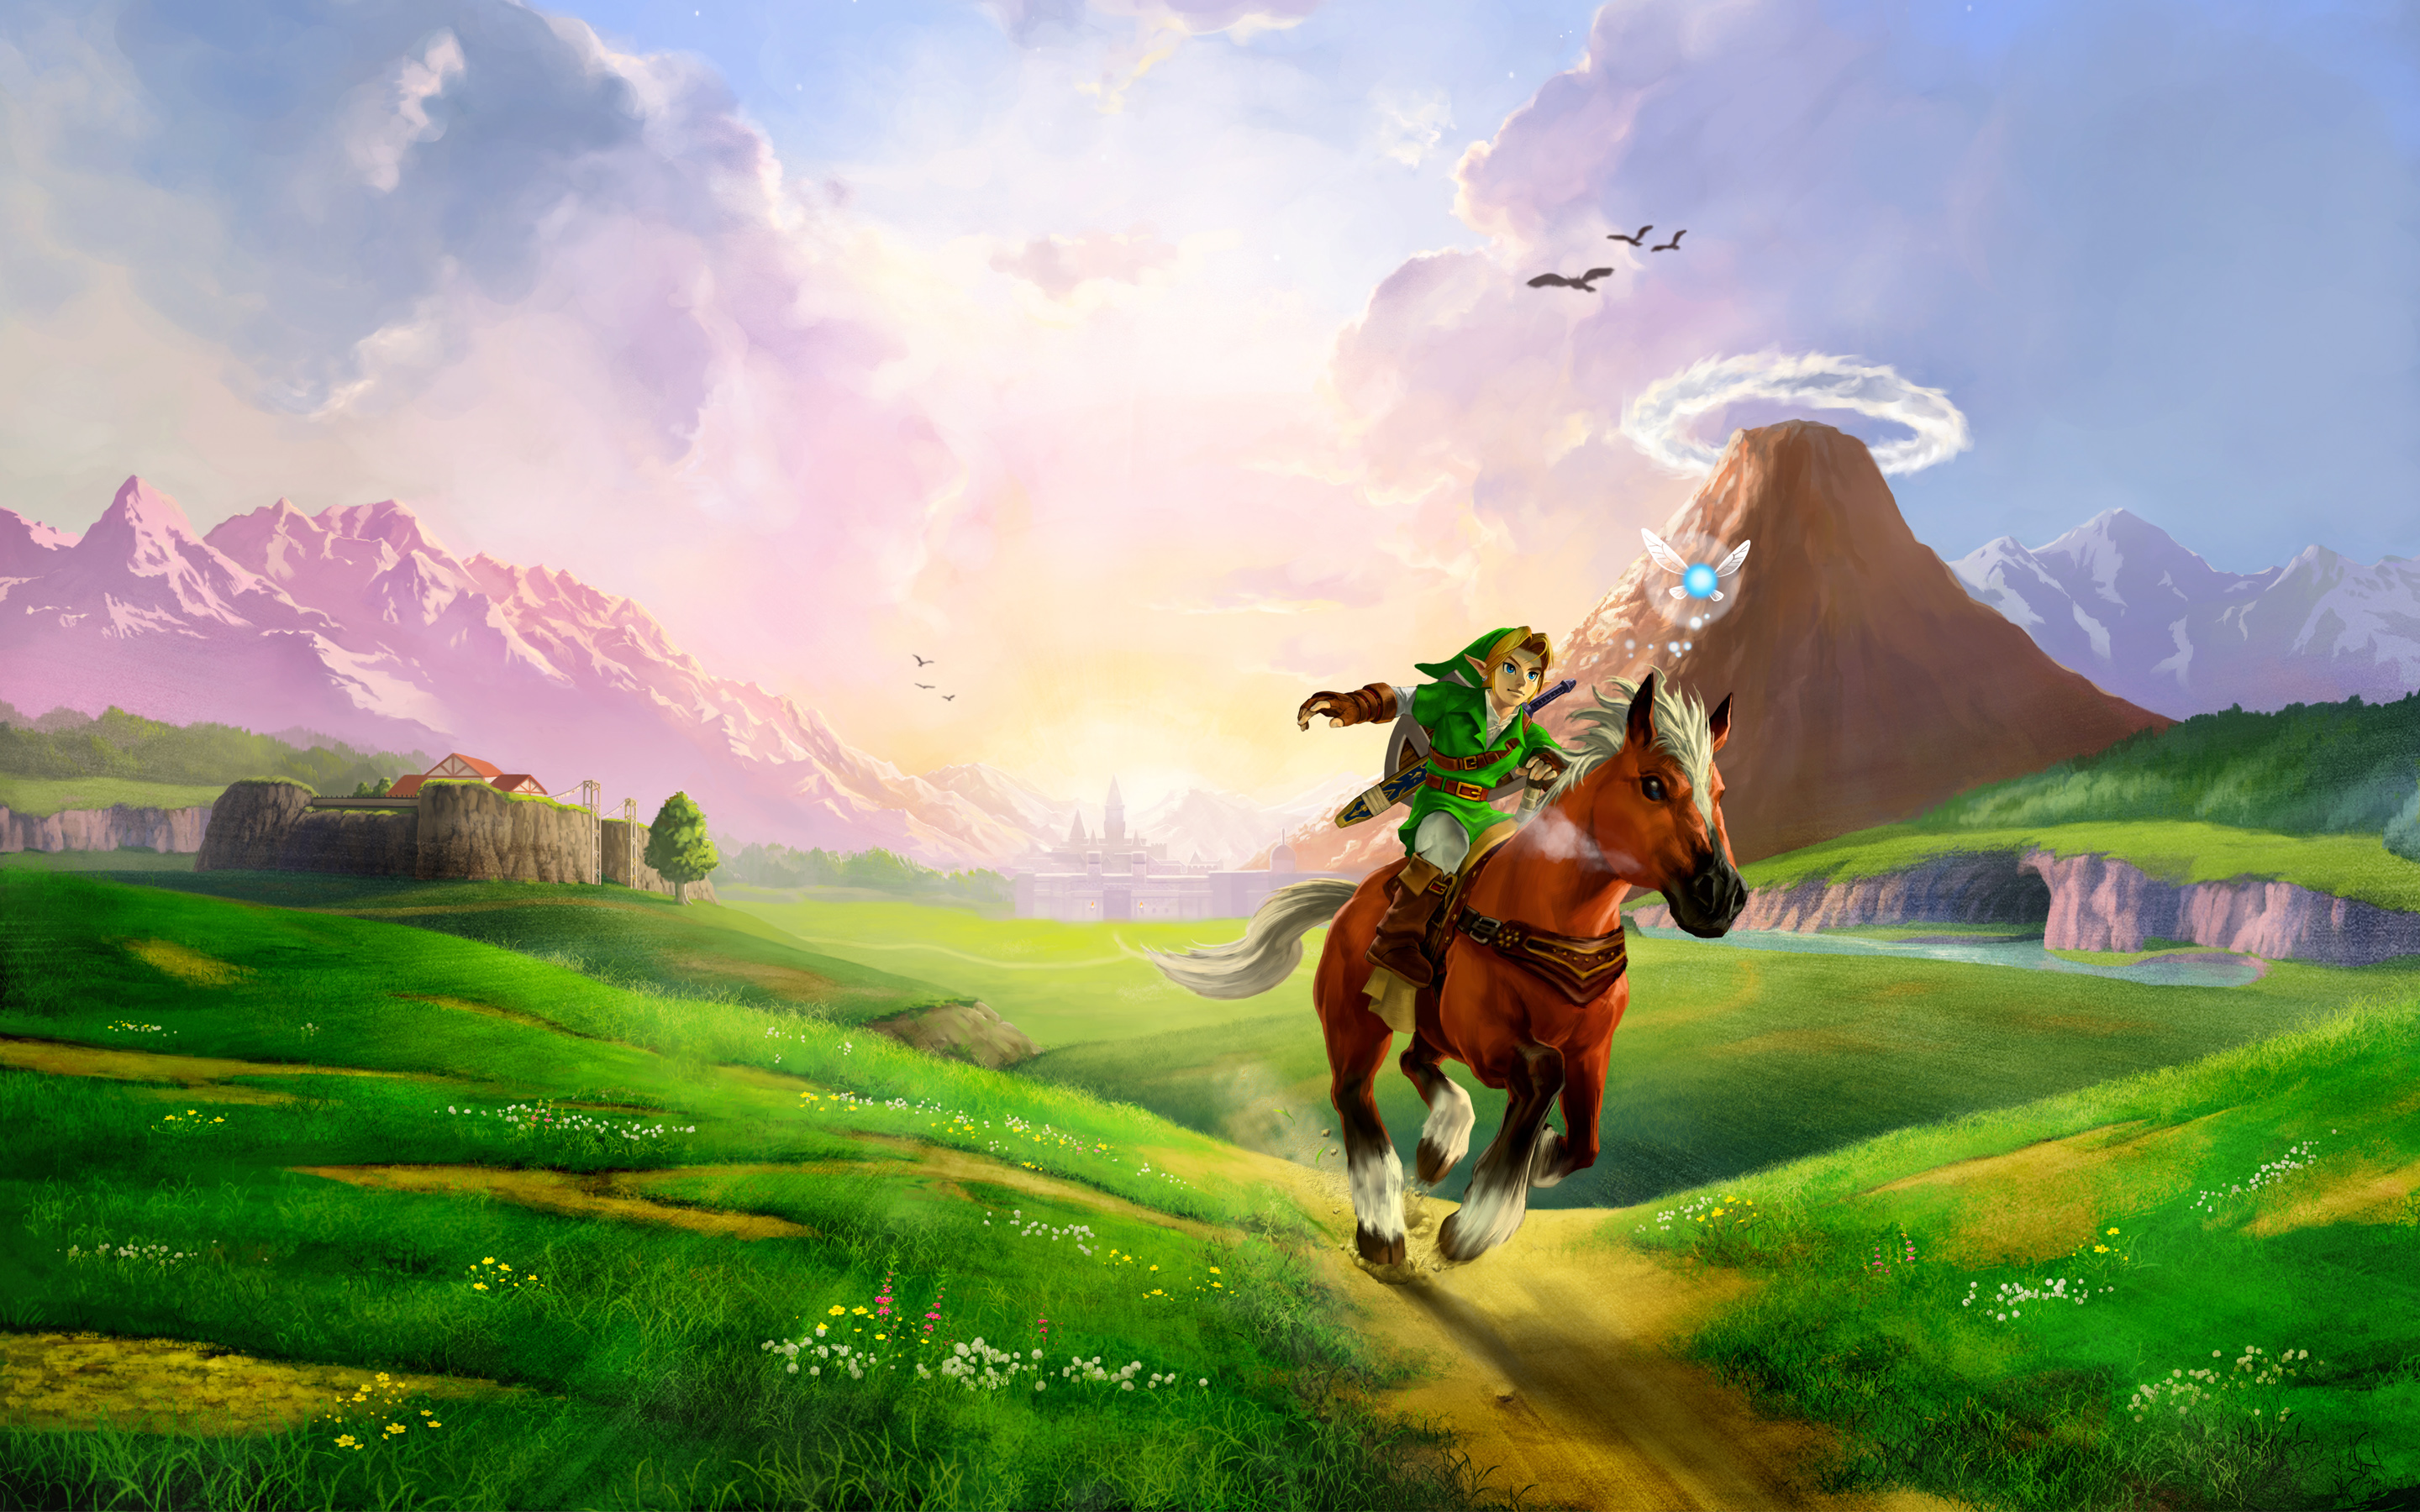 HD Wallpapers The Legend of Zelda Ocarina of Time